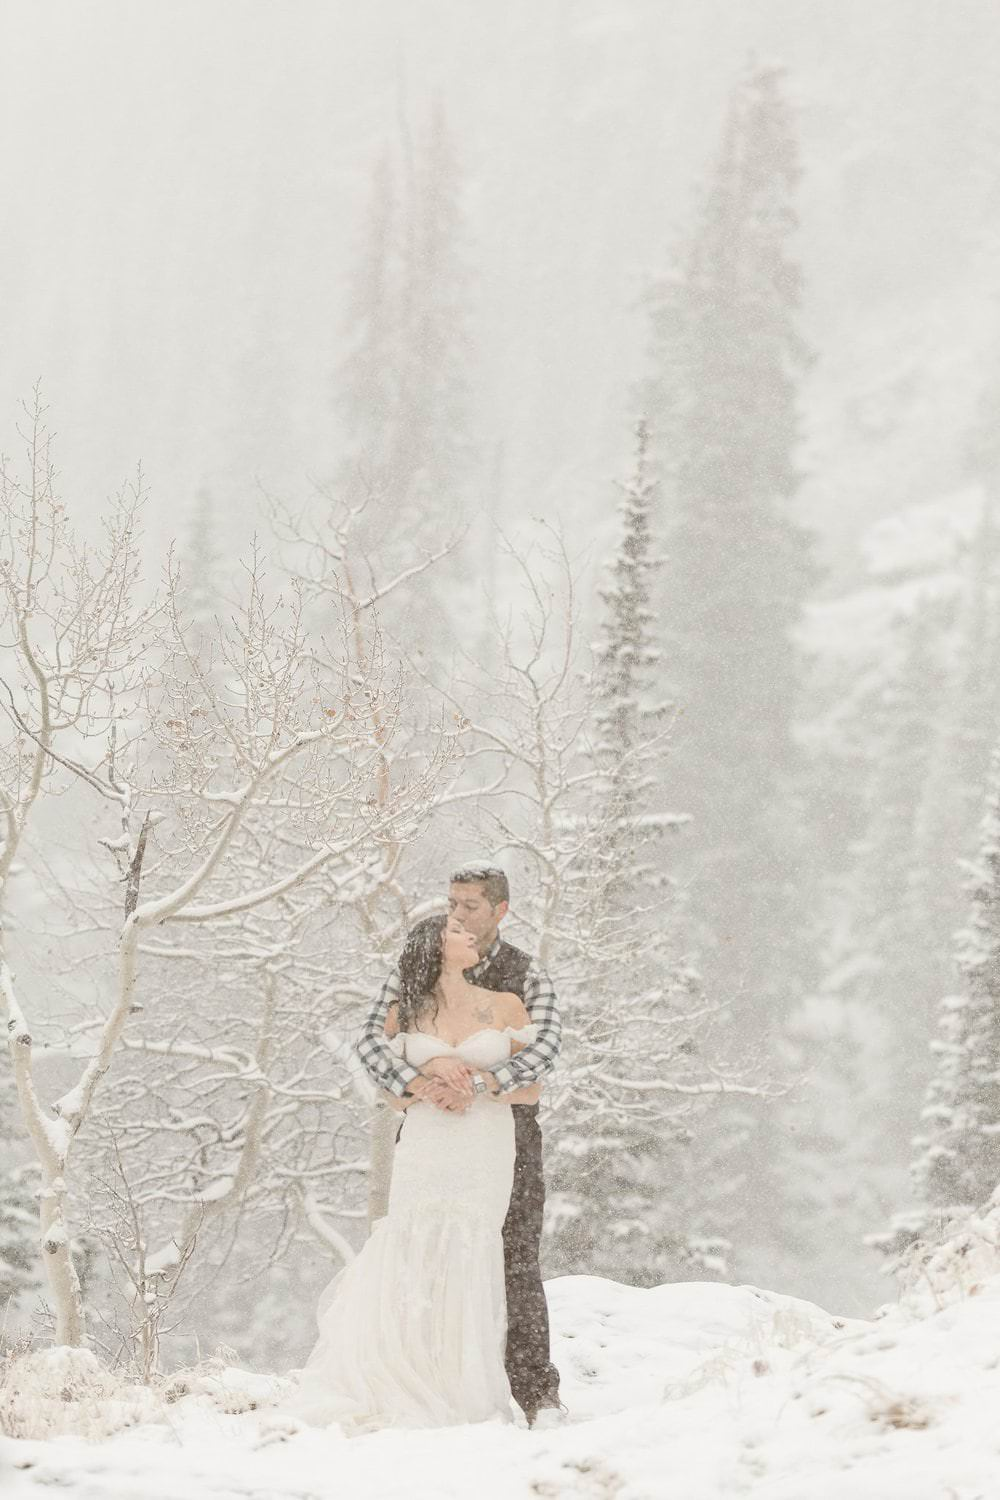 LILY+CHRIS'S ADVENTUROUS ROCKY MOUNTAIN NATIONAL PARK ADVENTURE | COLORADO ELOPEMENT PHOTOGRAPHER | DESTINATION ELOPEMENT PHOTOGRAPHER